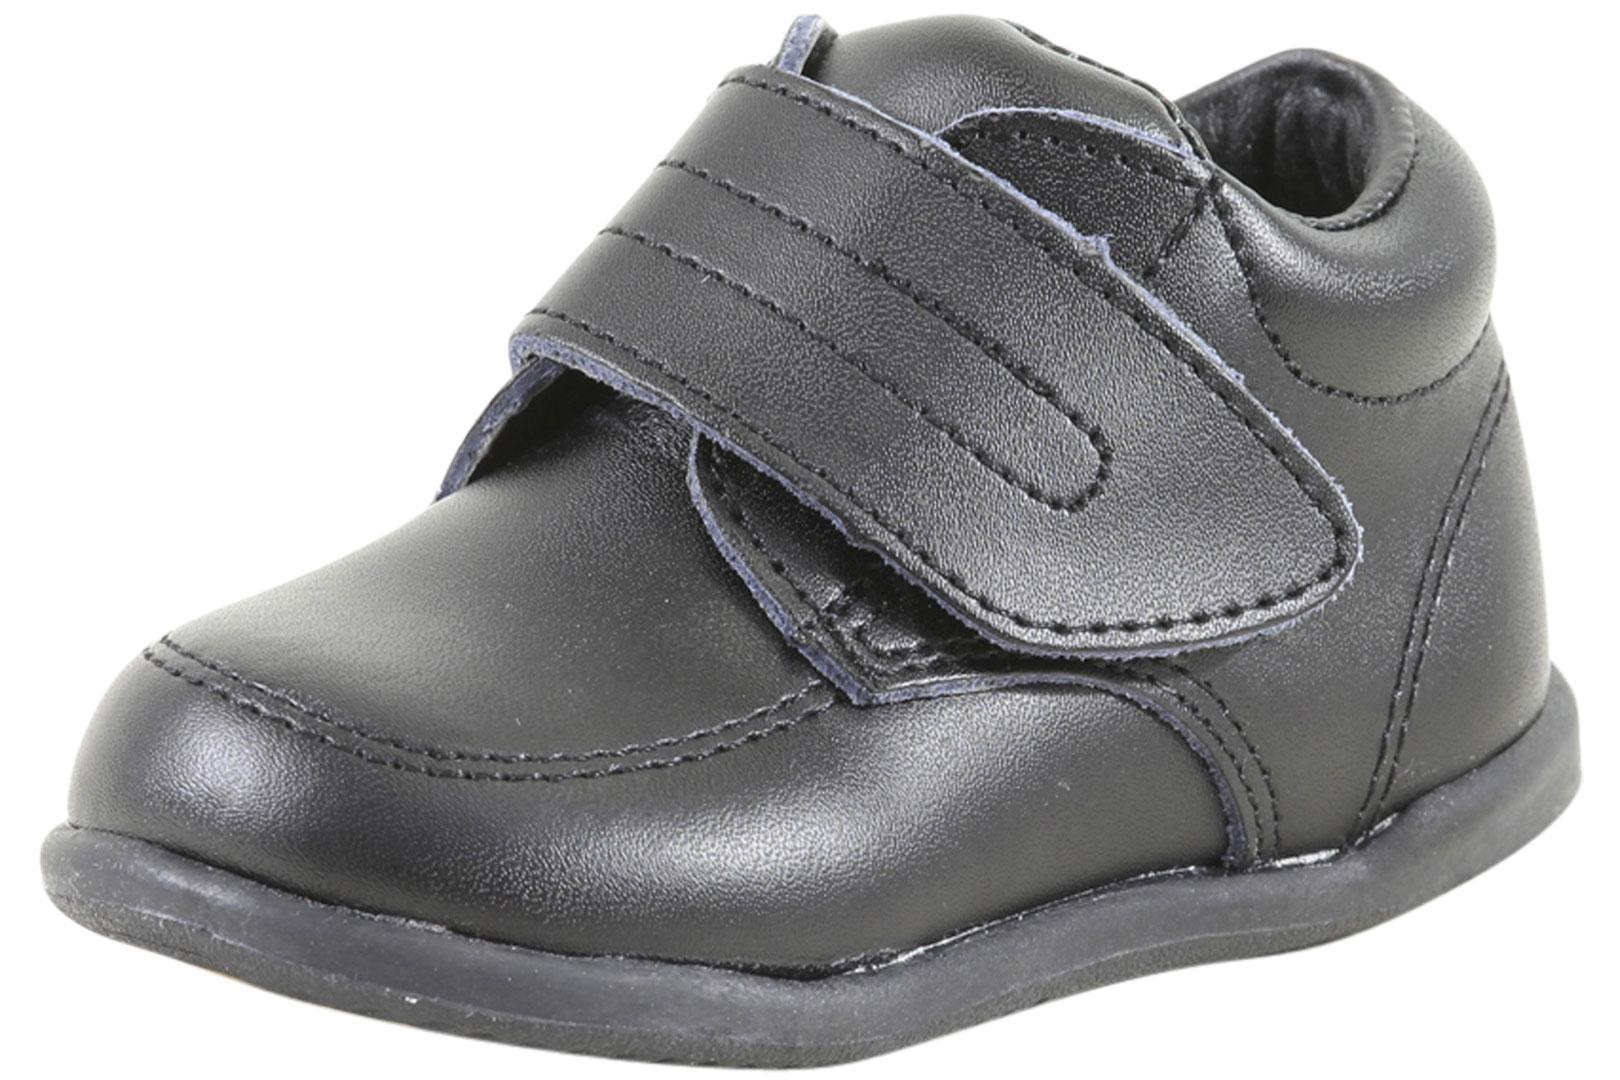 Image of Smart Step By Josmo Toddler's First Walkers Oxfords Shoes - Black - 4 M US Toddler